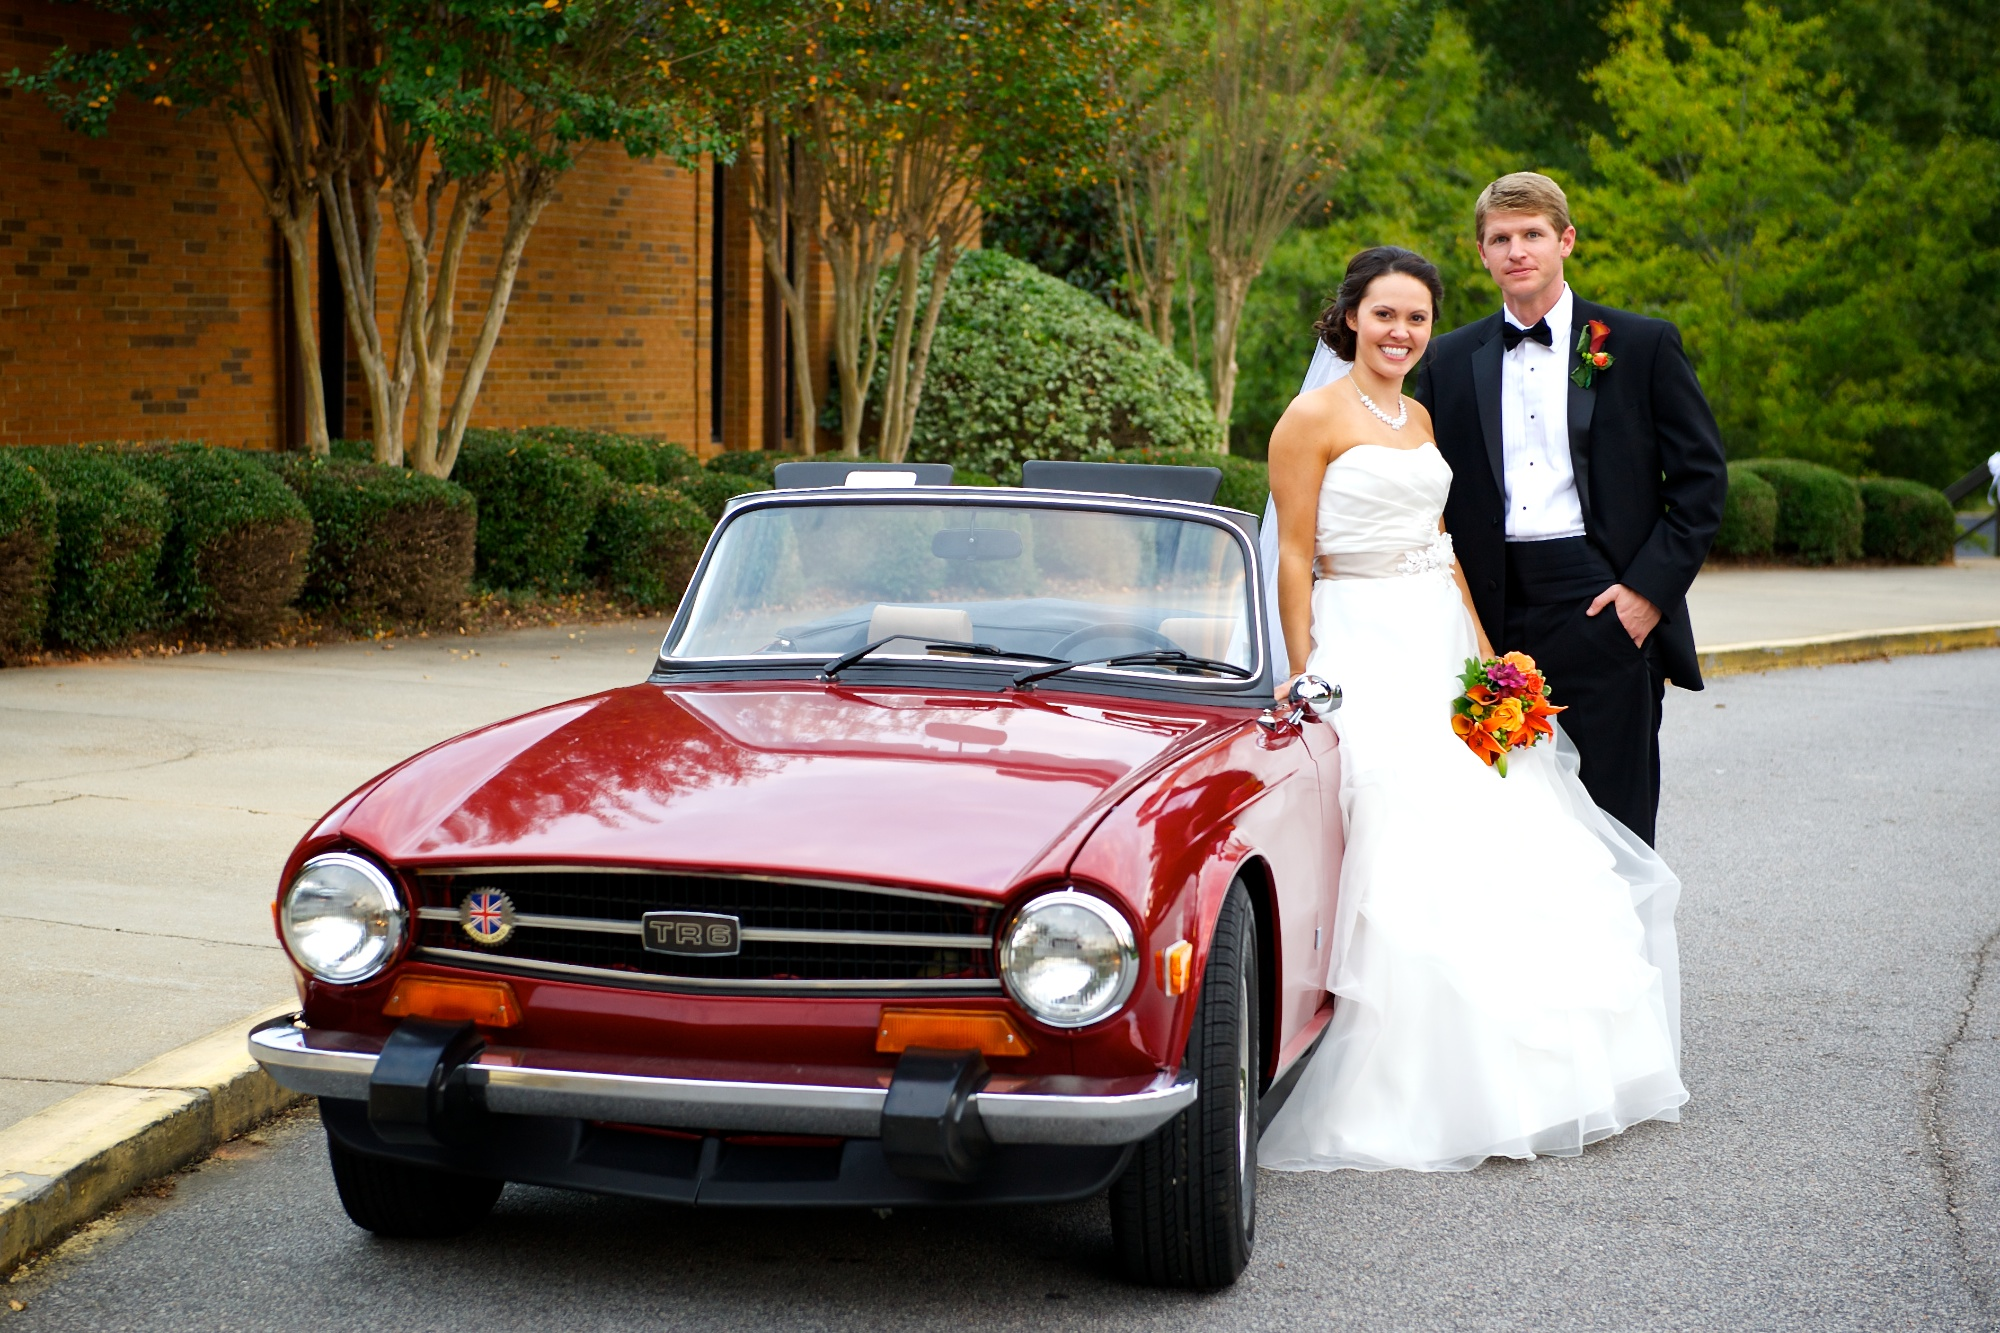 Lindsay and Brain's Wedding at cornerstone presbyterian church and Saluda Shoals